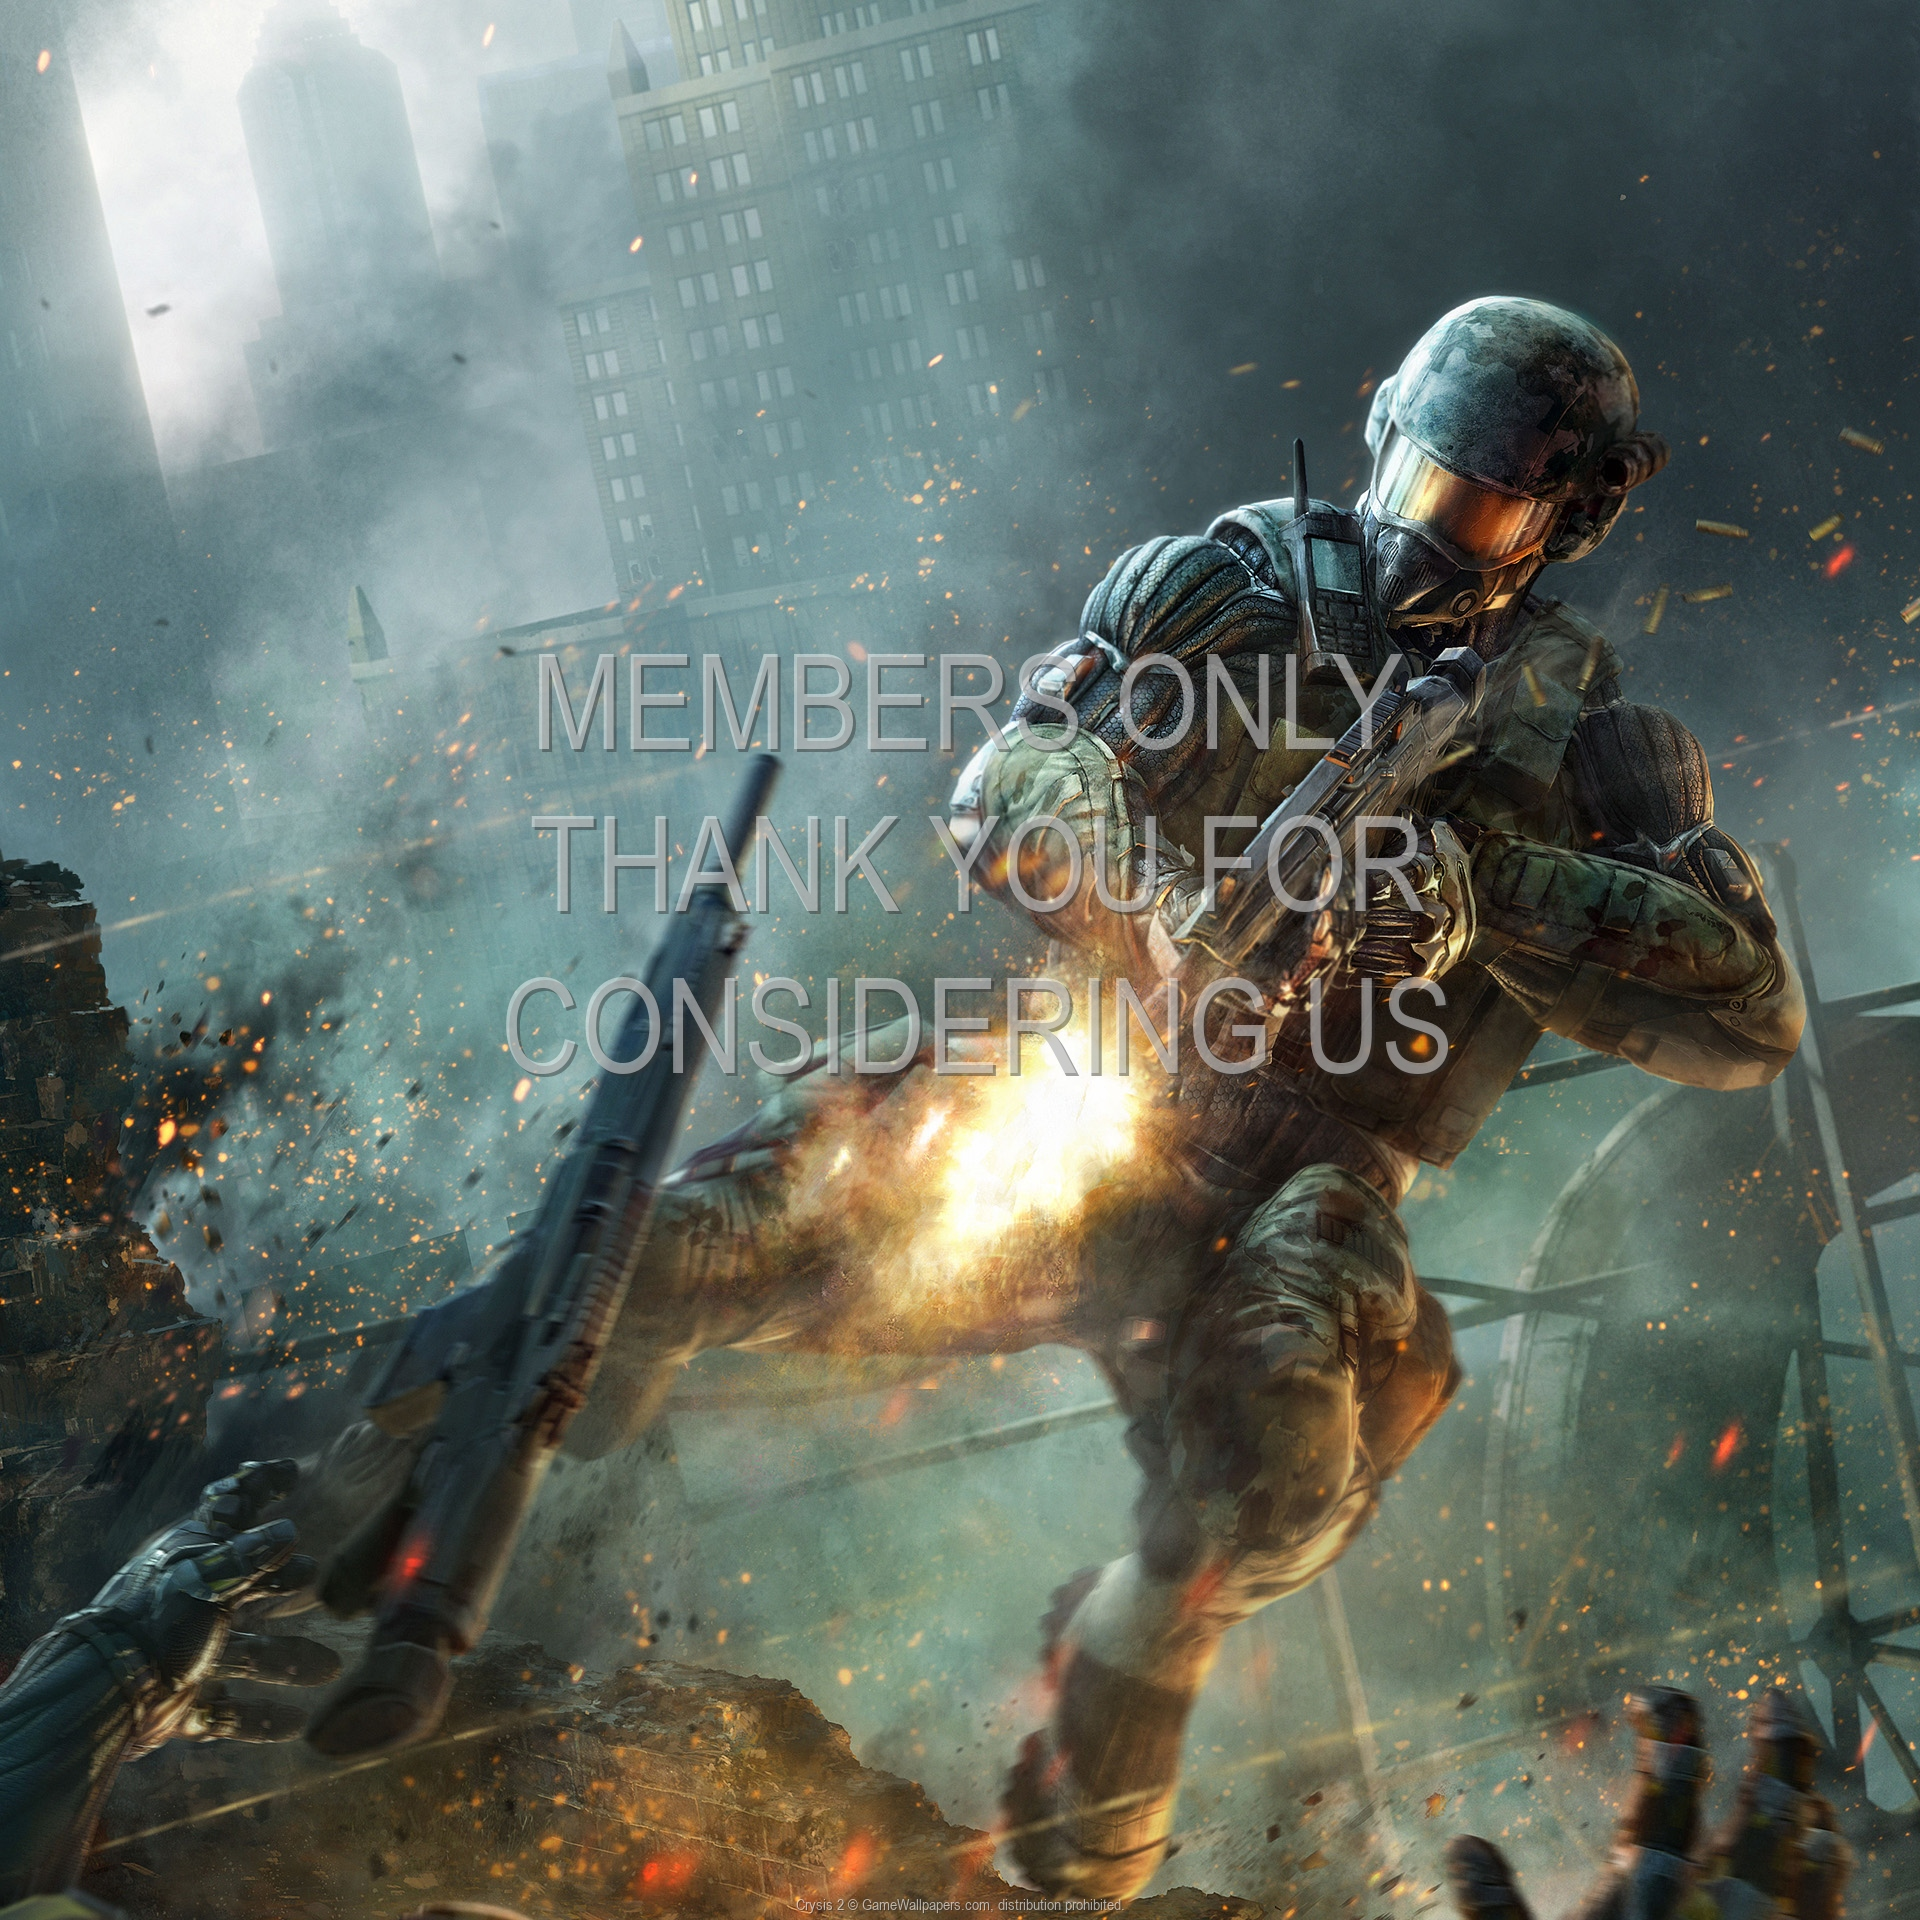 Crysis 2 1920x1080 Mobile wallpaper or background 05